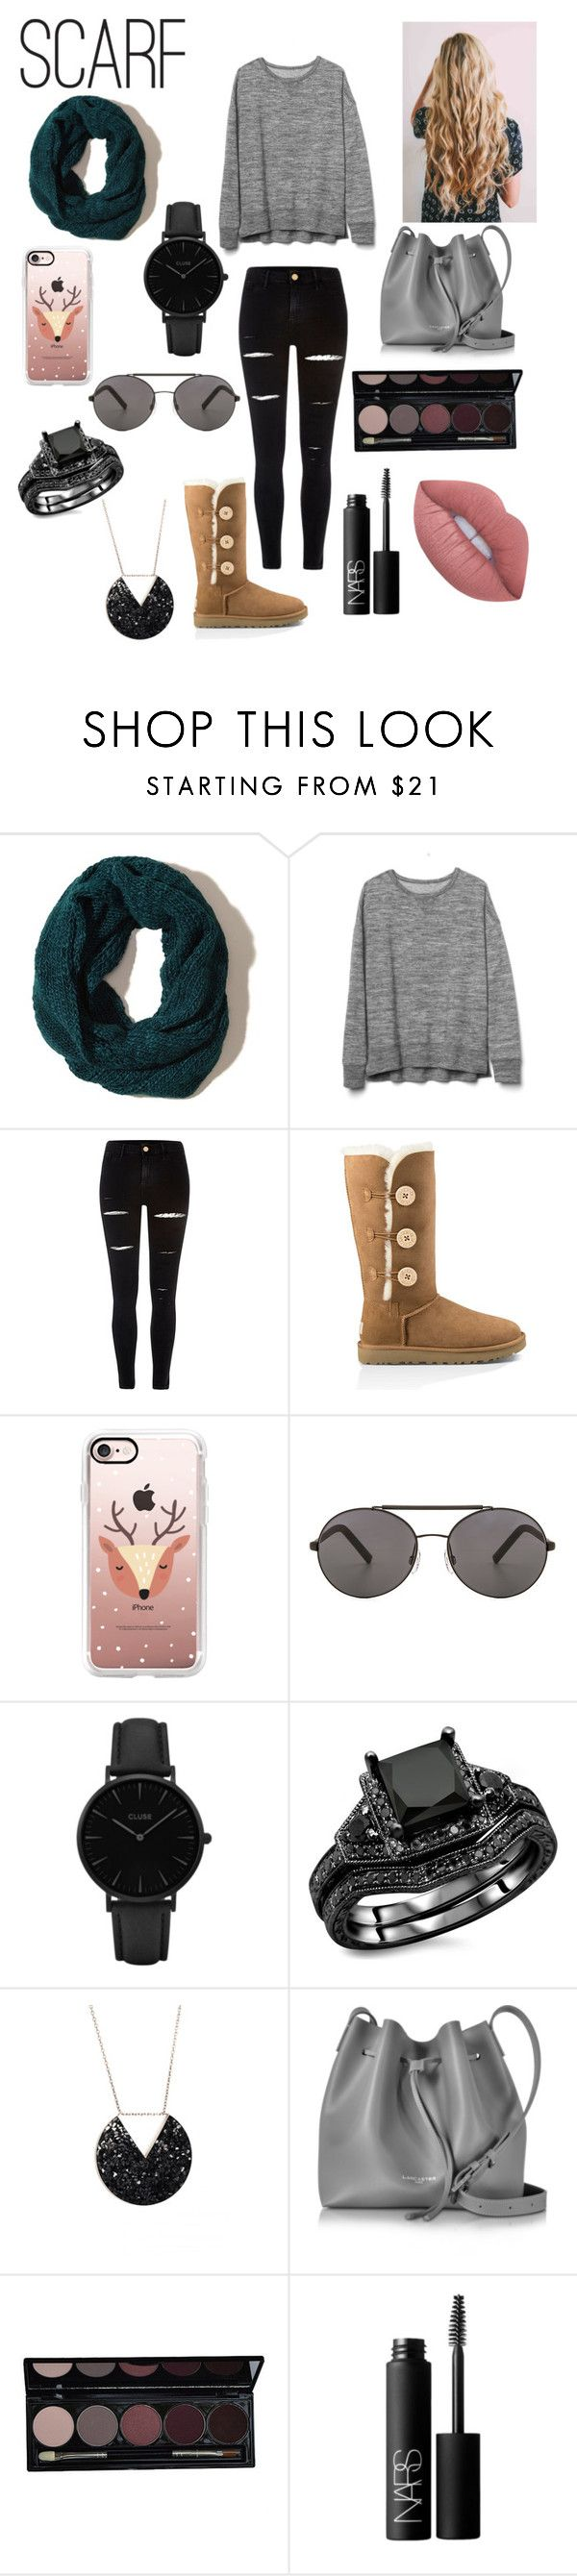 """❄️Scarves❄️"" by absfashion101 ❤ liked on Polyvore featuring Hollister Co., Gap, River Island, UGG Australia, Casetify, Seafolly, CLUSE, Lancaster, NARS Cosmetics and Lime Crime"